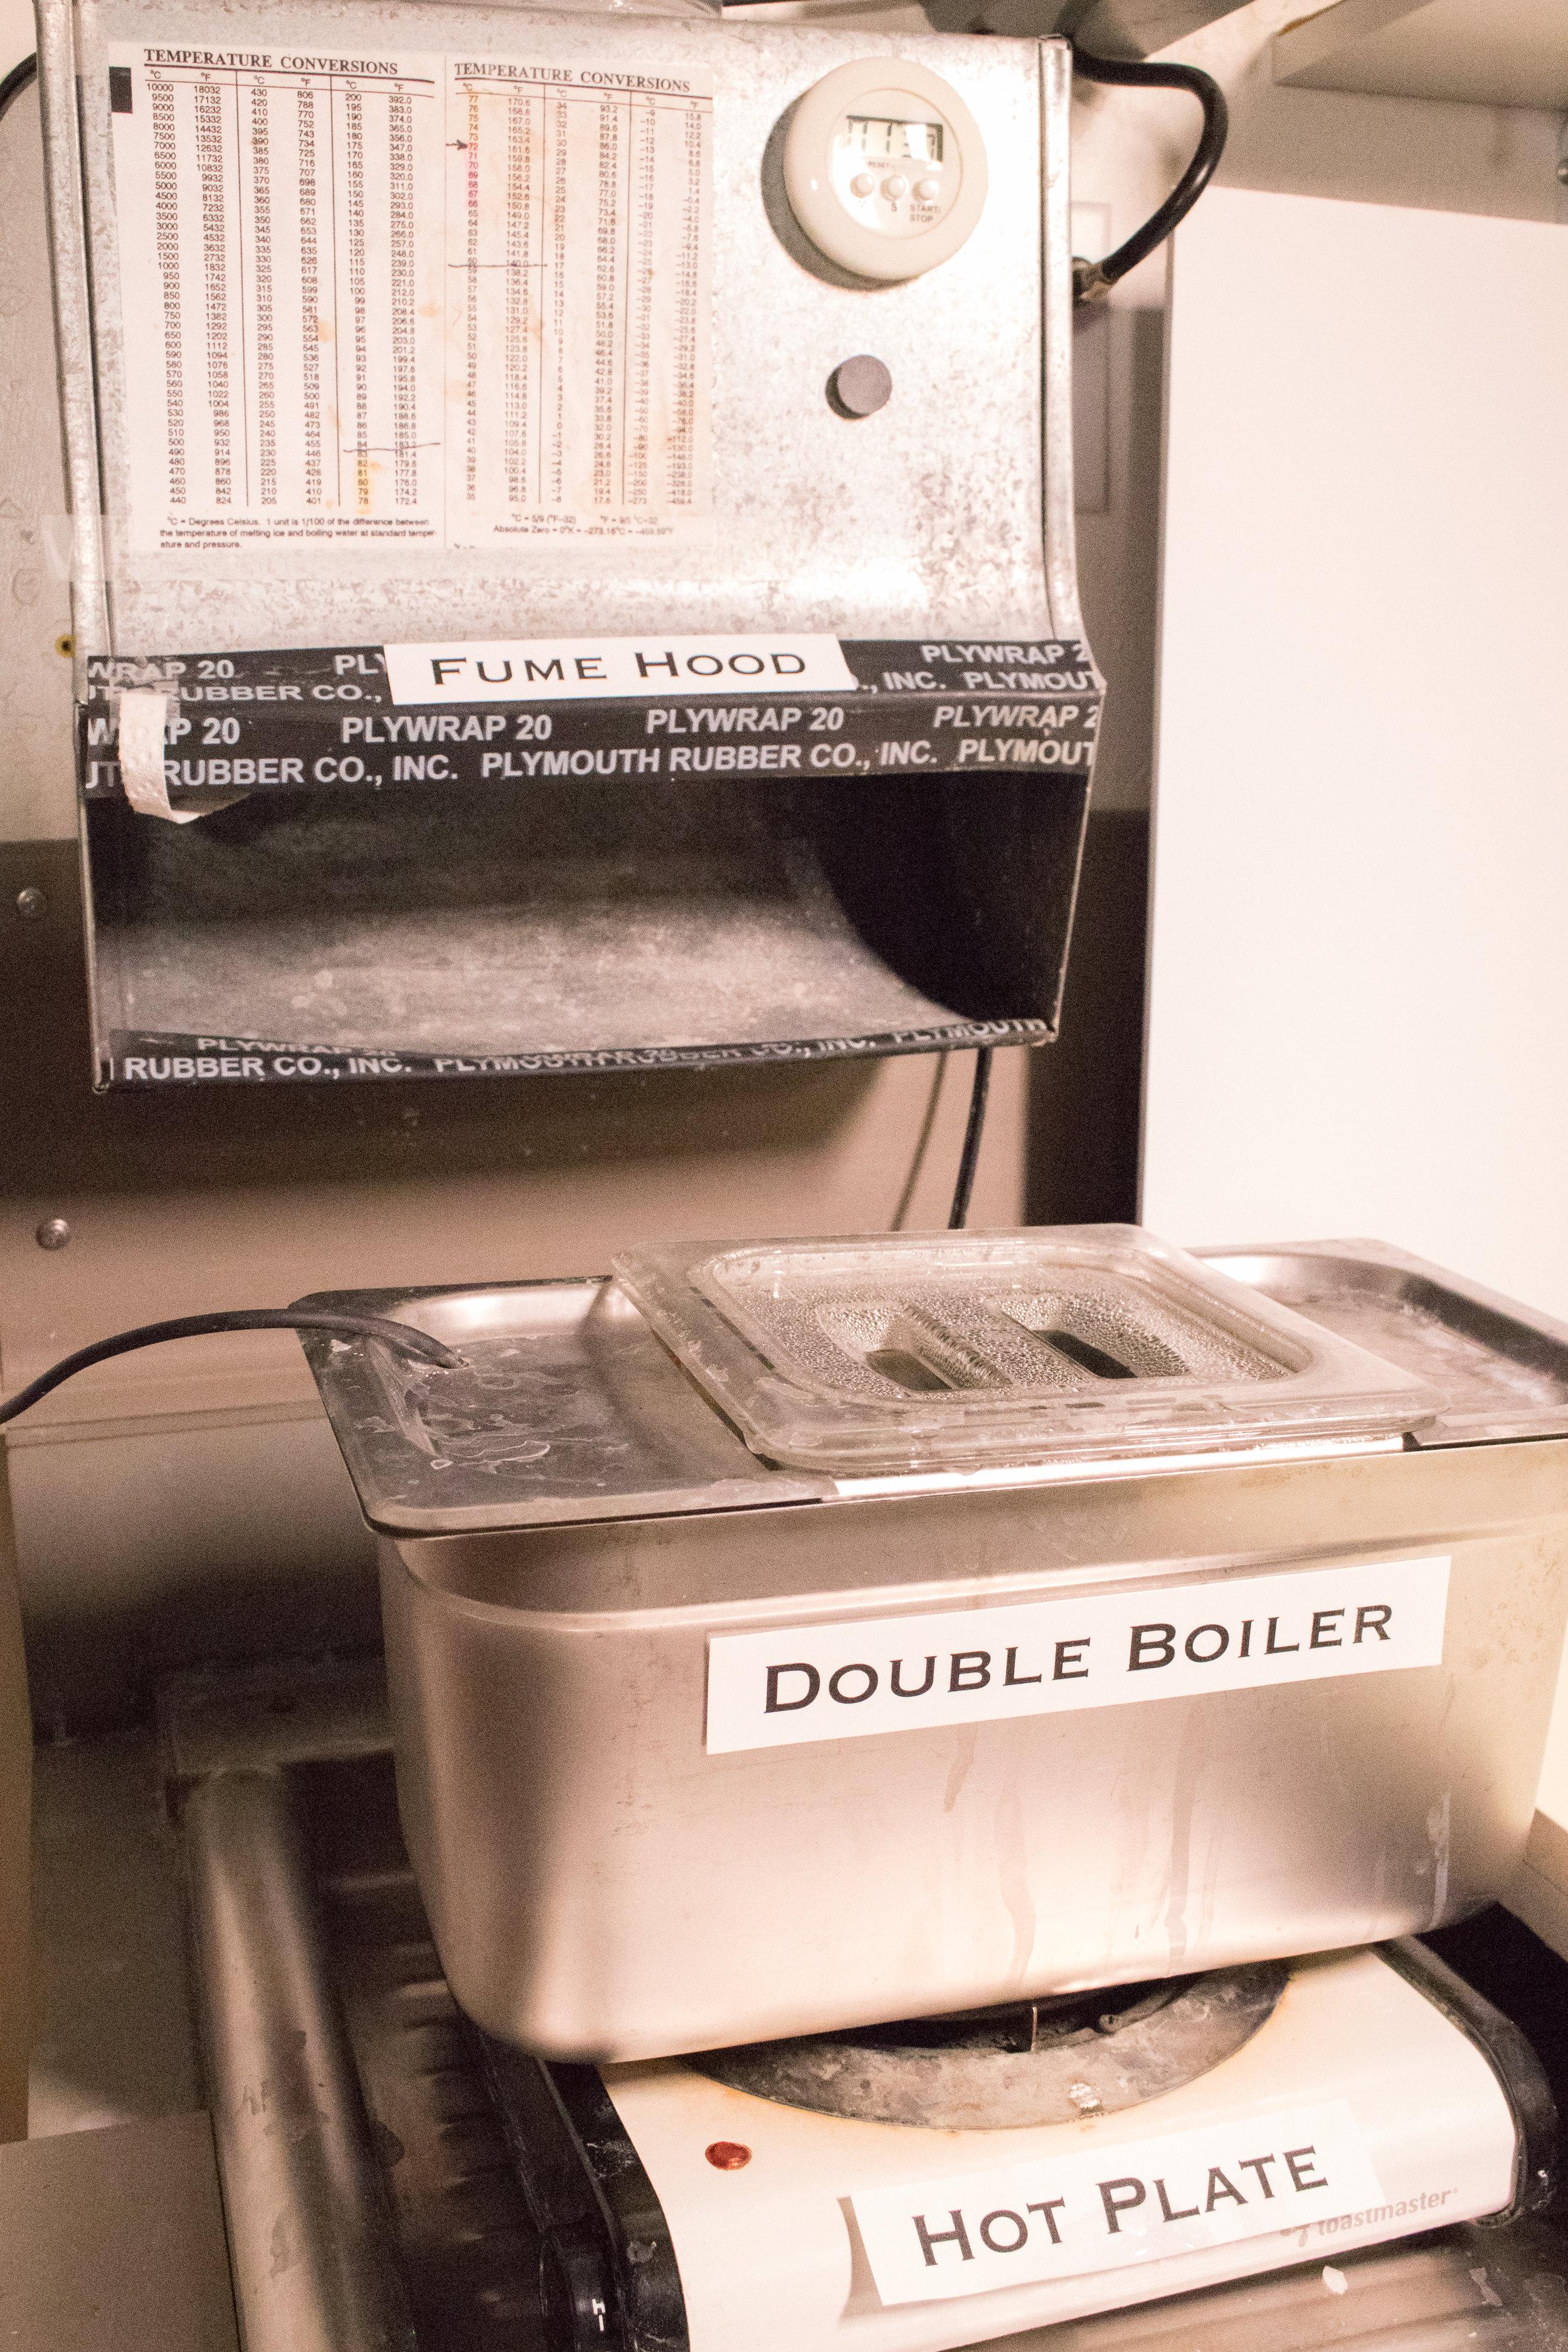 Double boiler placed beneath a fume hood in laboratory.